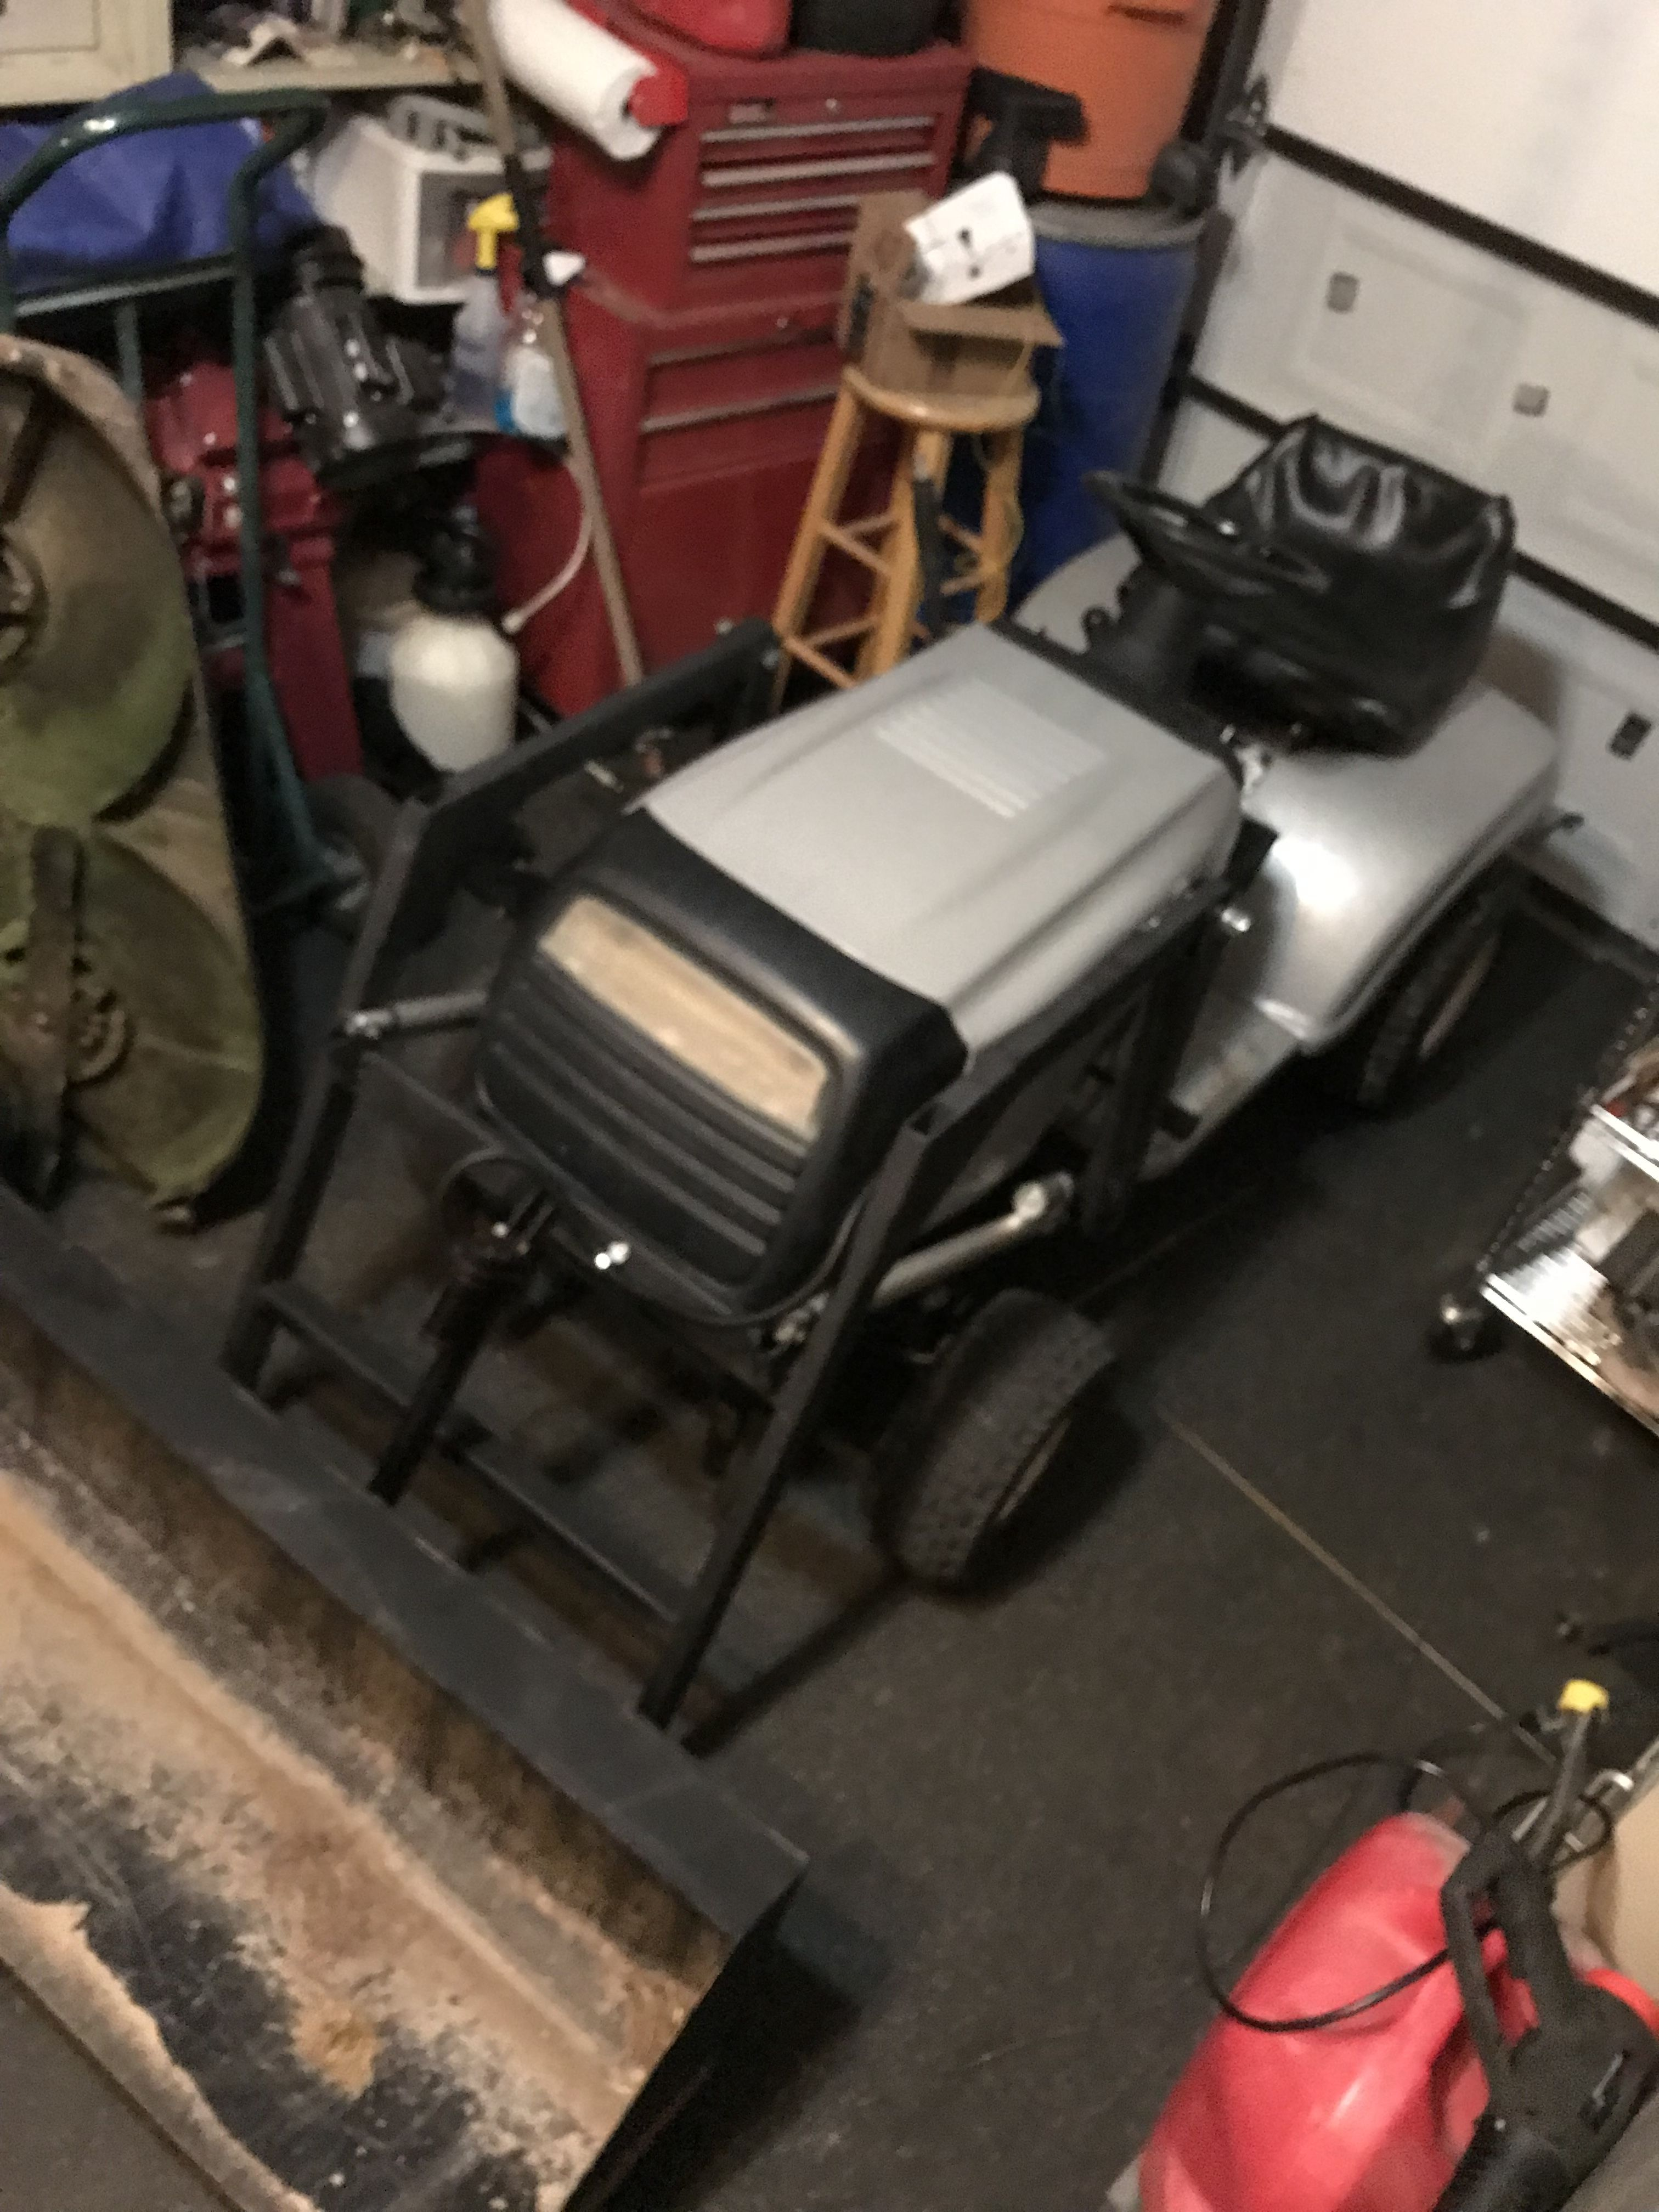 Poulan Lawn Tractor With Electric Front End Loader Complete I Finally Got Around To Wiring Up The Electrical Rams Permanen Lawn Tractor Tractor Idea Tractors